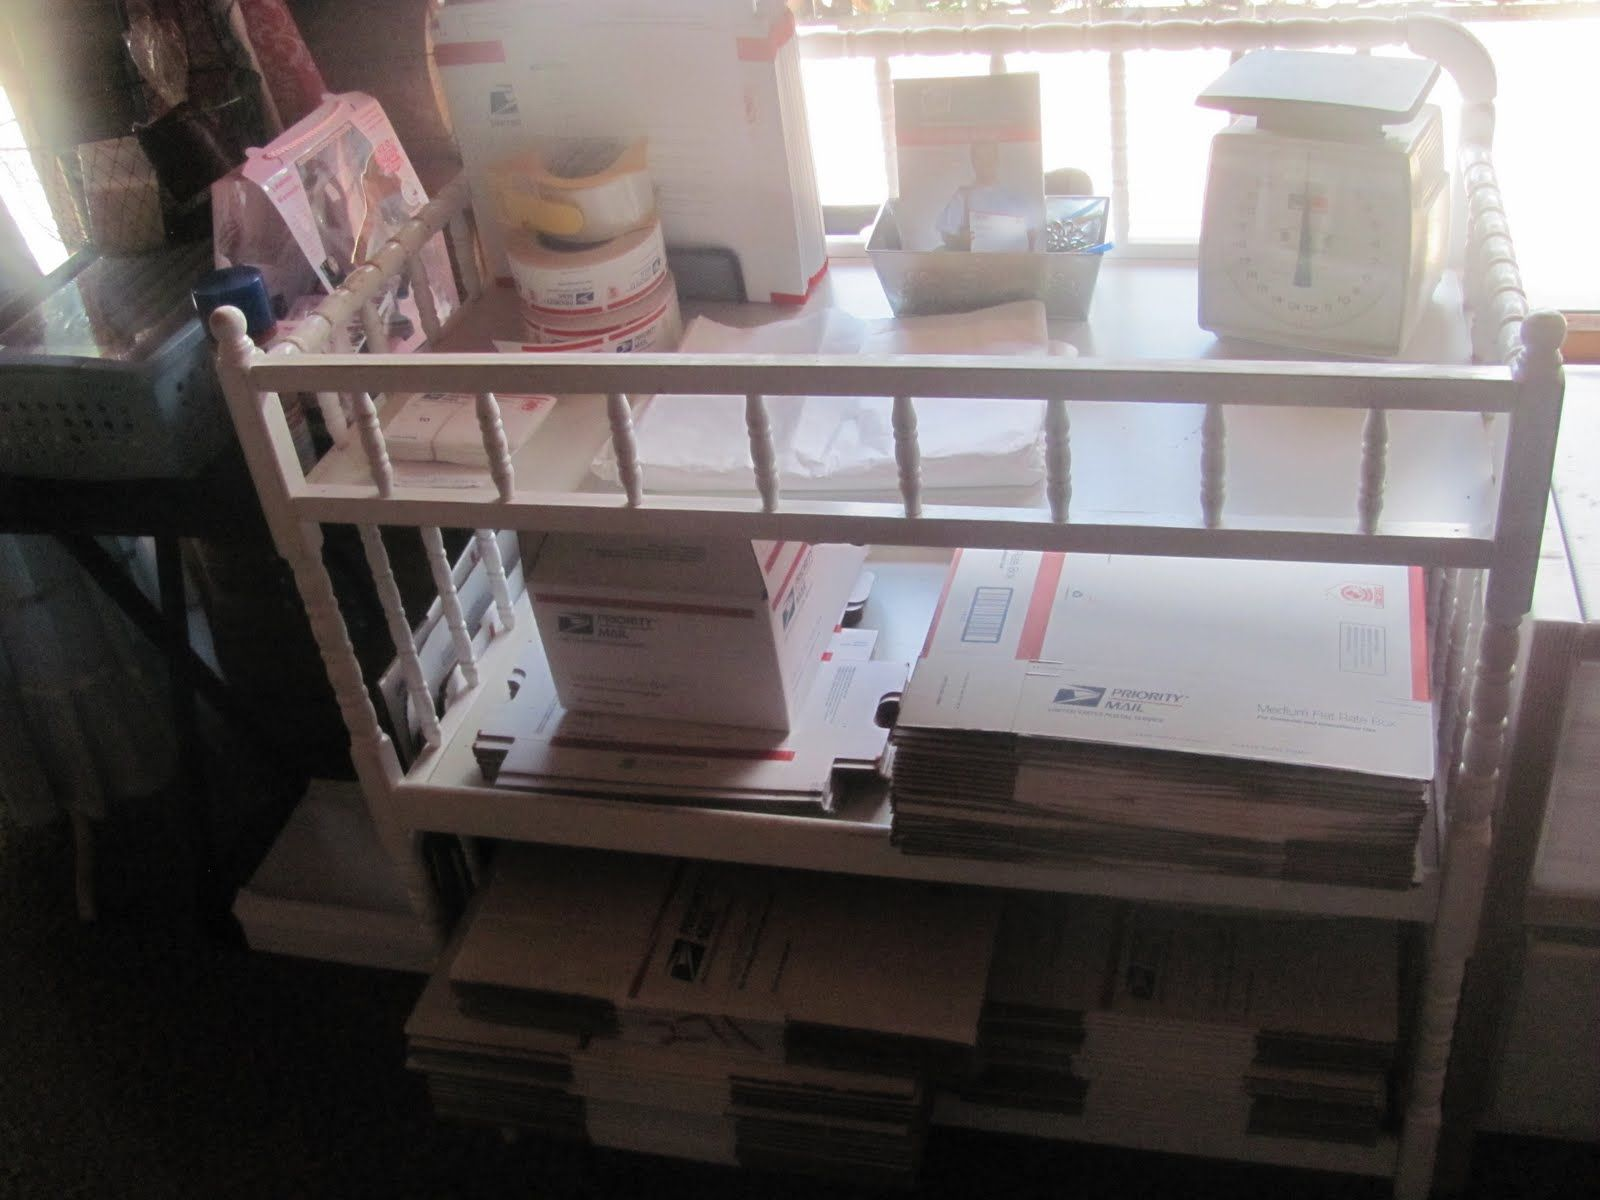 Charming Last Week I Wrote About Repurposing An Old Crib, This Time U2013 Weu0027re Going To  Tackle How To Repurpose Old Changing Tables! If Your Child Outgrows Their  ...